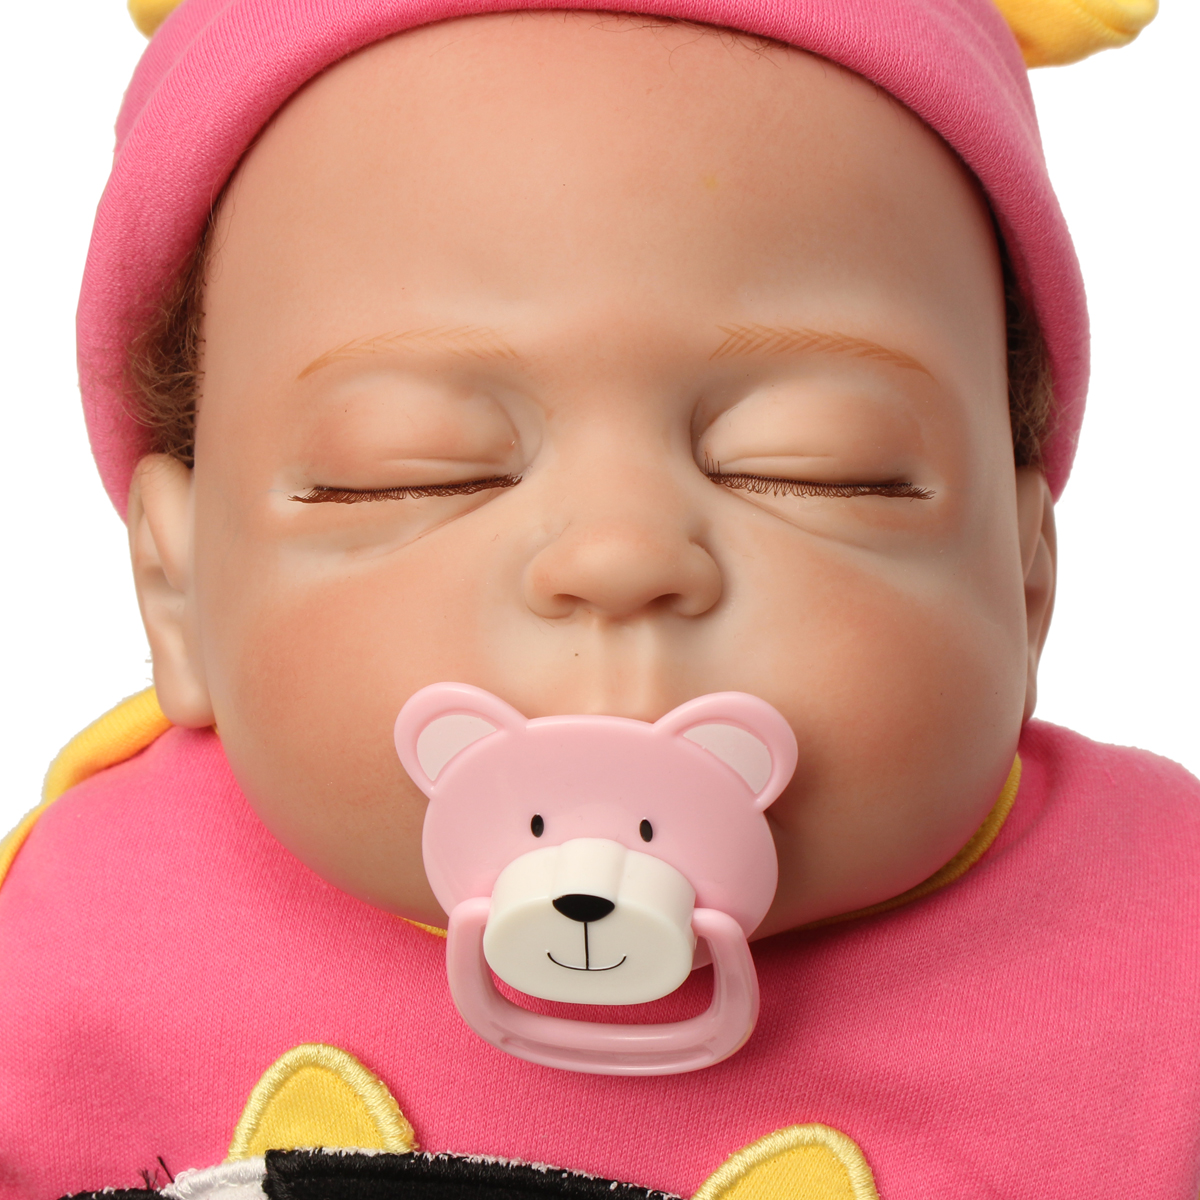 NPK 23 Inch 58cm Reborn Baby Soft Silicone Doll Sleeping Baby Handmade Lifelike Baby Girl Dolls Play House Toys Birthday Gift